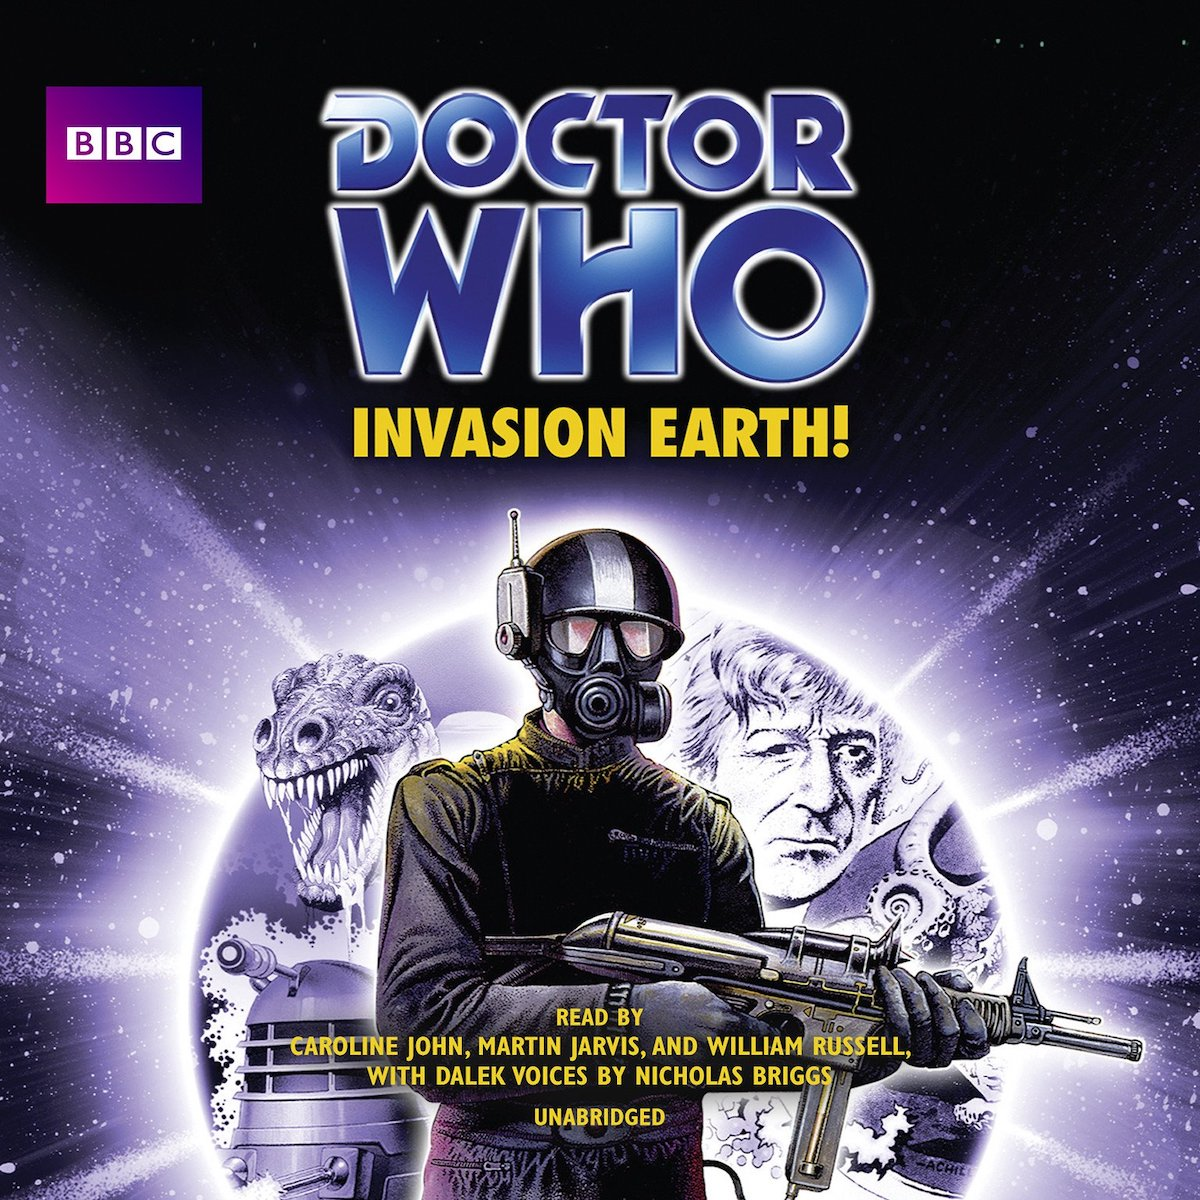 Invasion Earth